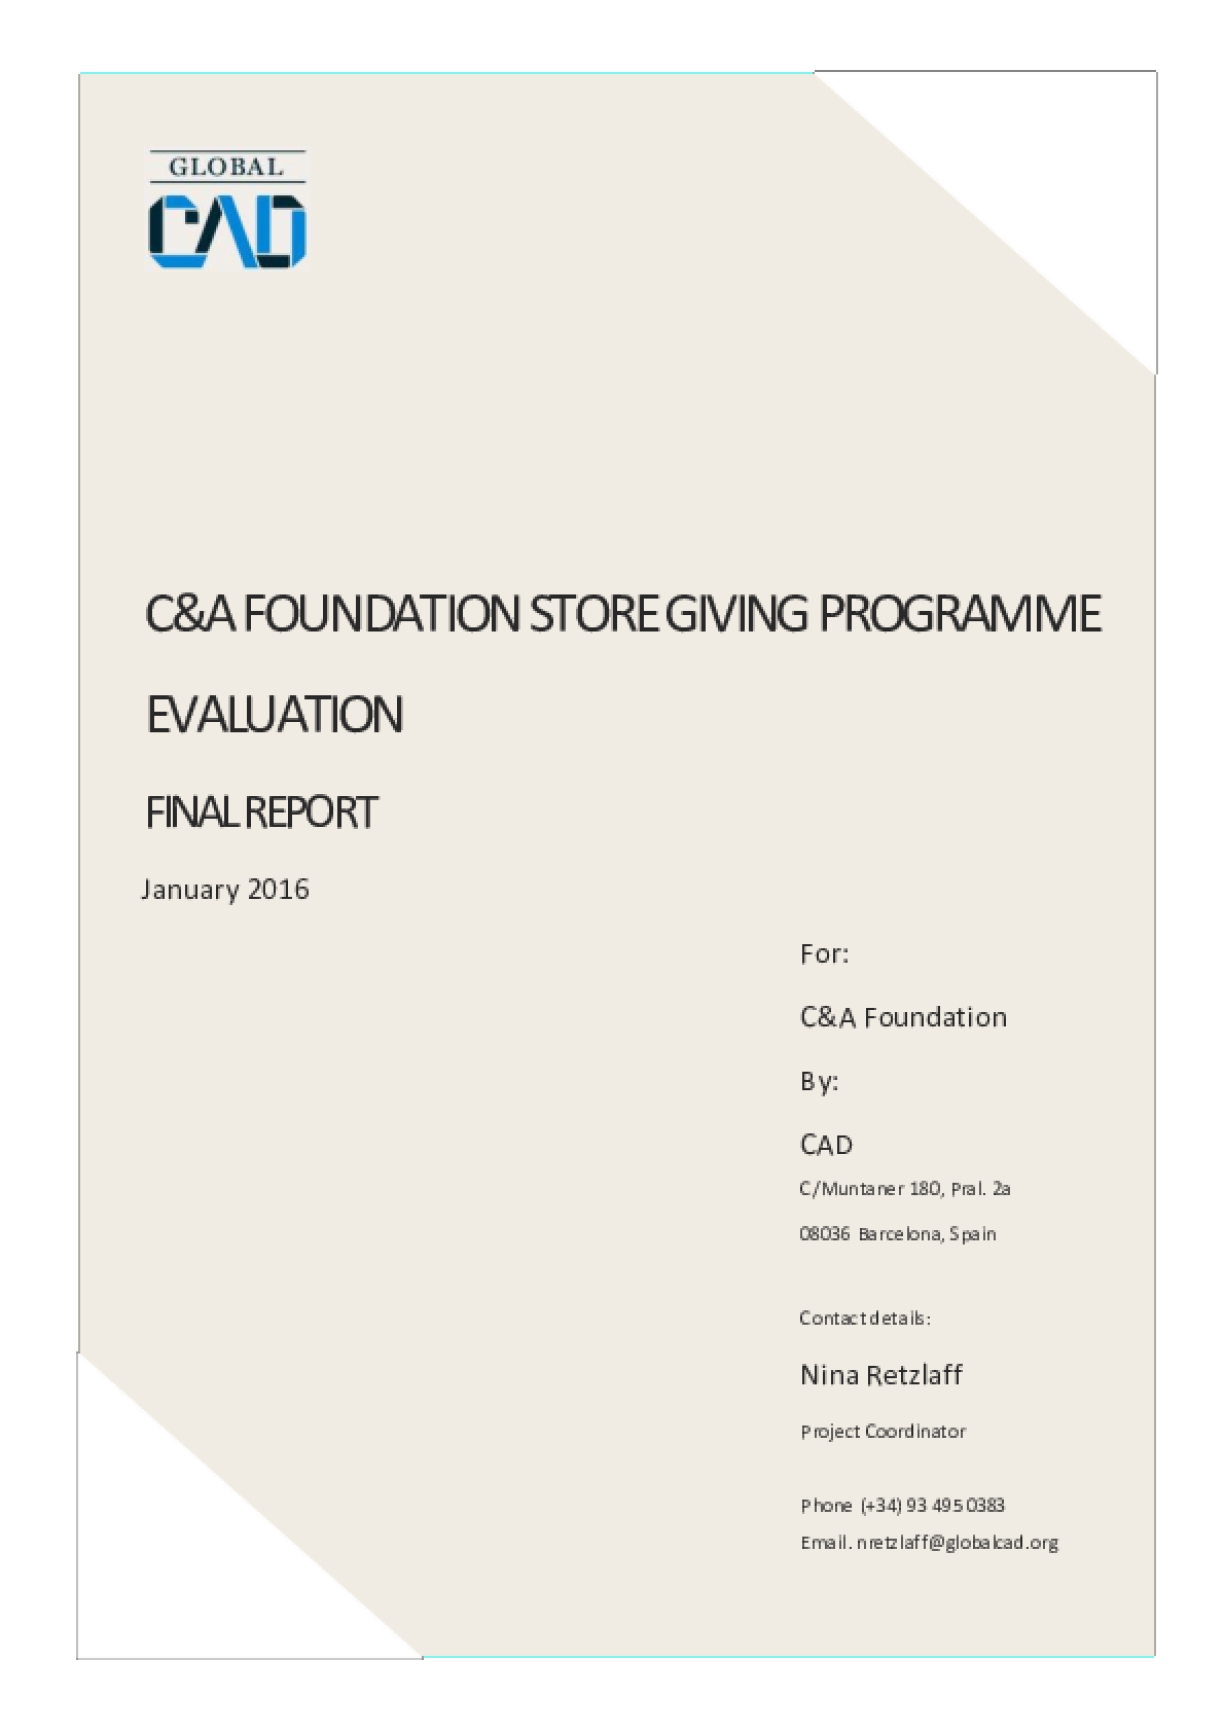 C&A Foundation Store Giving Programme Evaluation Final Report